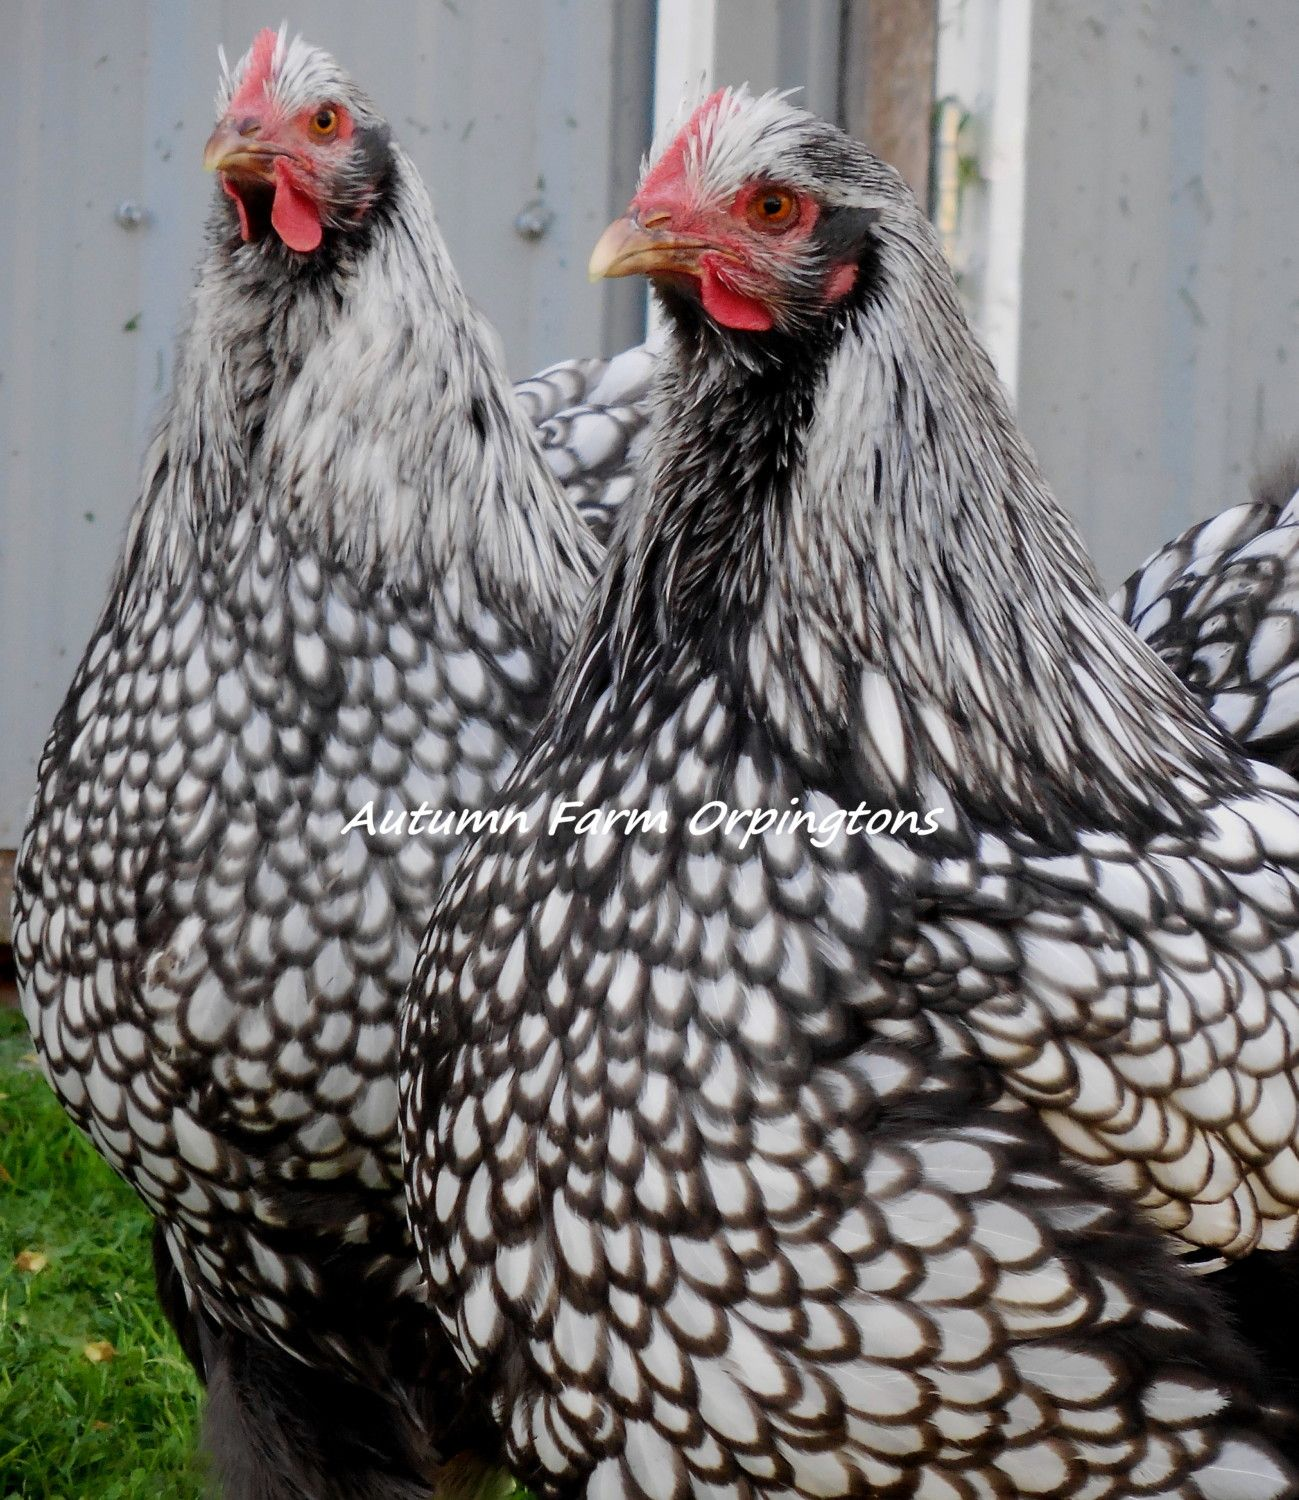 Pure English Silver Laced hens, Skip's daughters